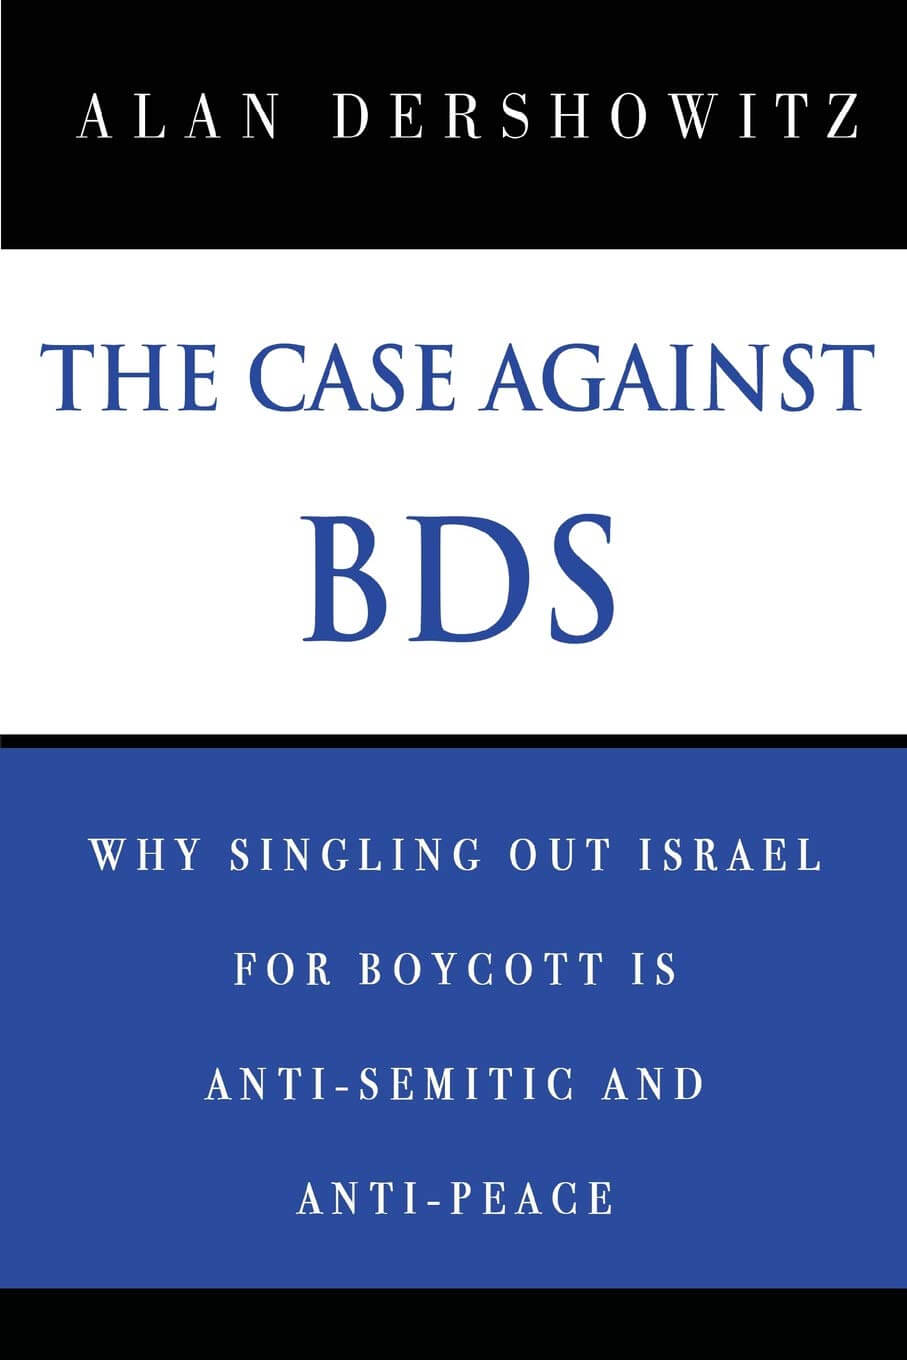 The Case Against BDS: Why SIngling out Israel for Boycott is Antisemitic and Anti-Peace